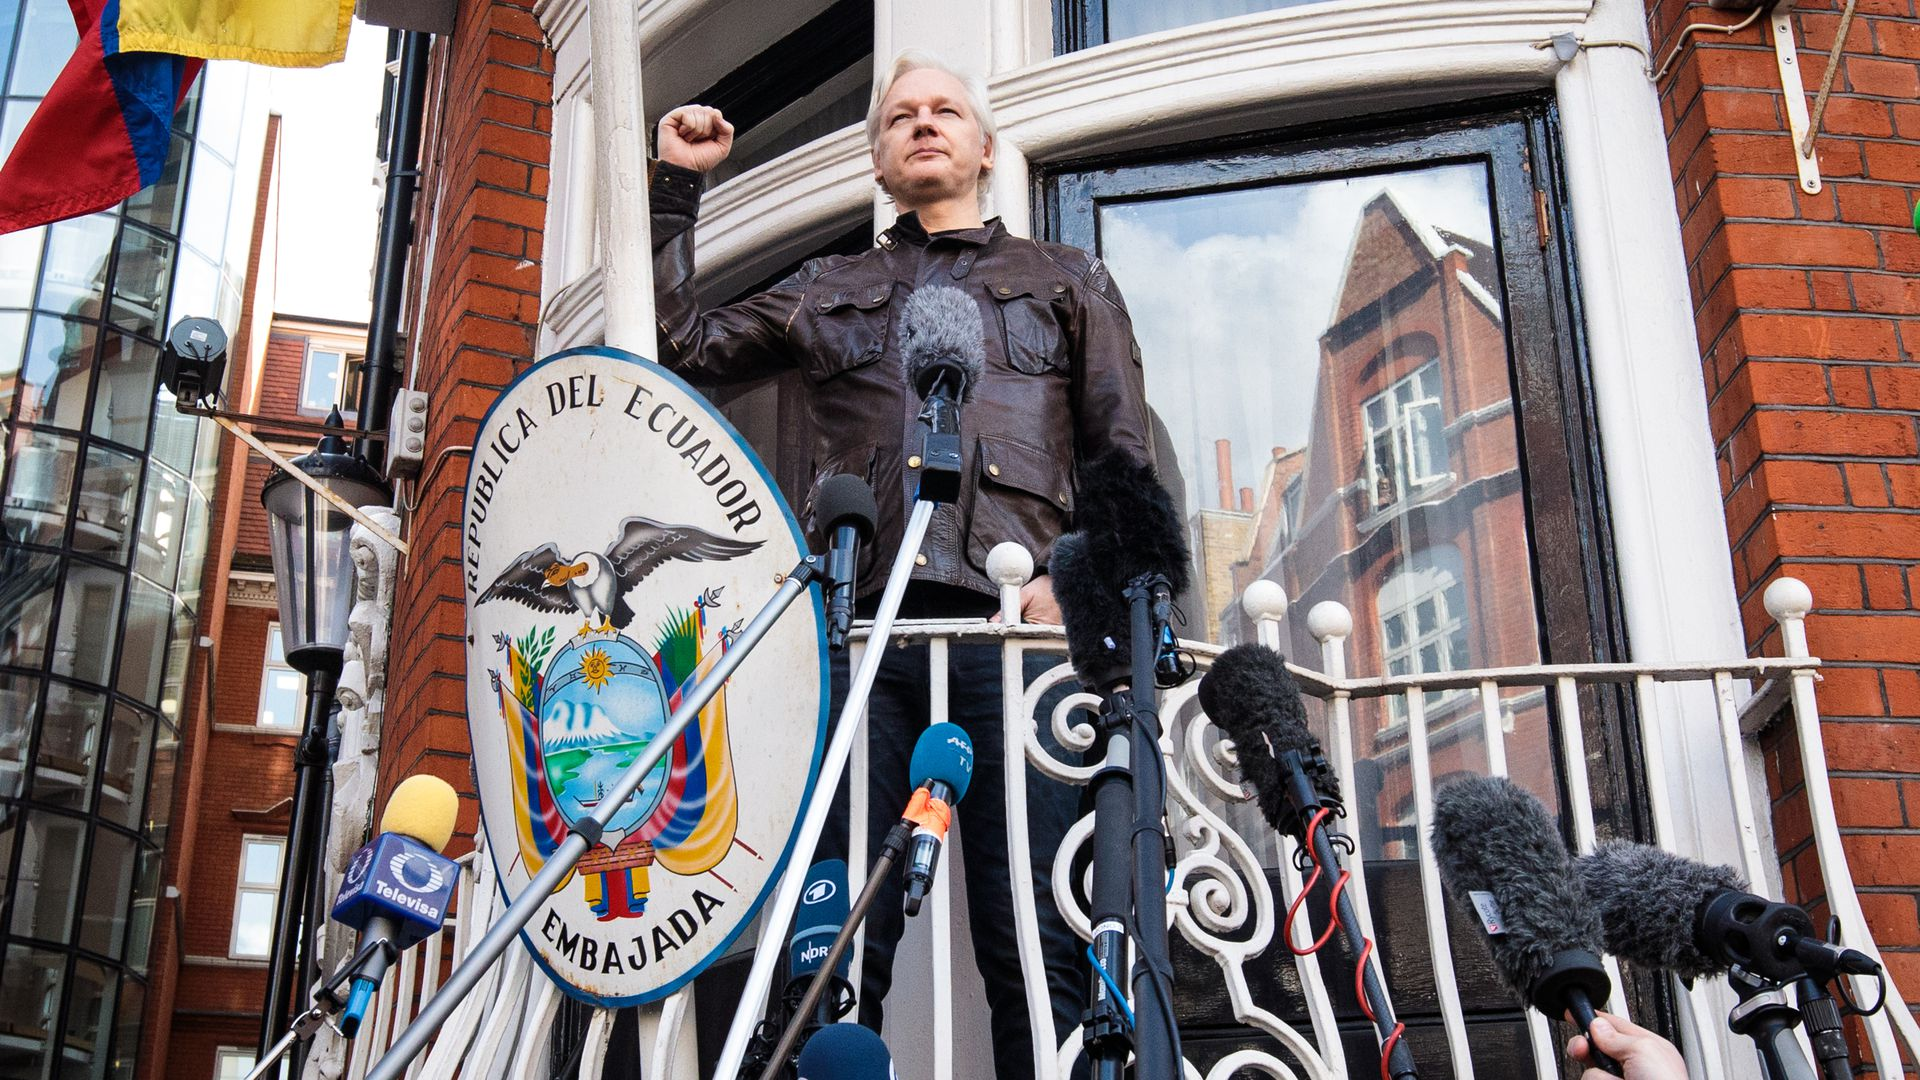 Julian Assange speaking at the balcony of the Ecuadorean Embassy.